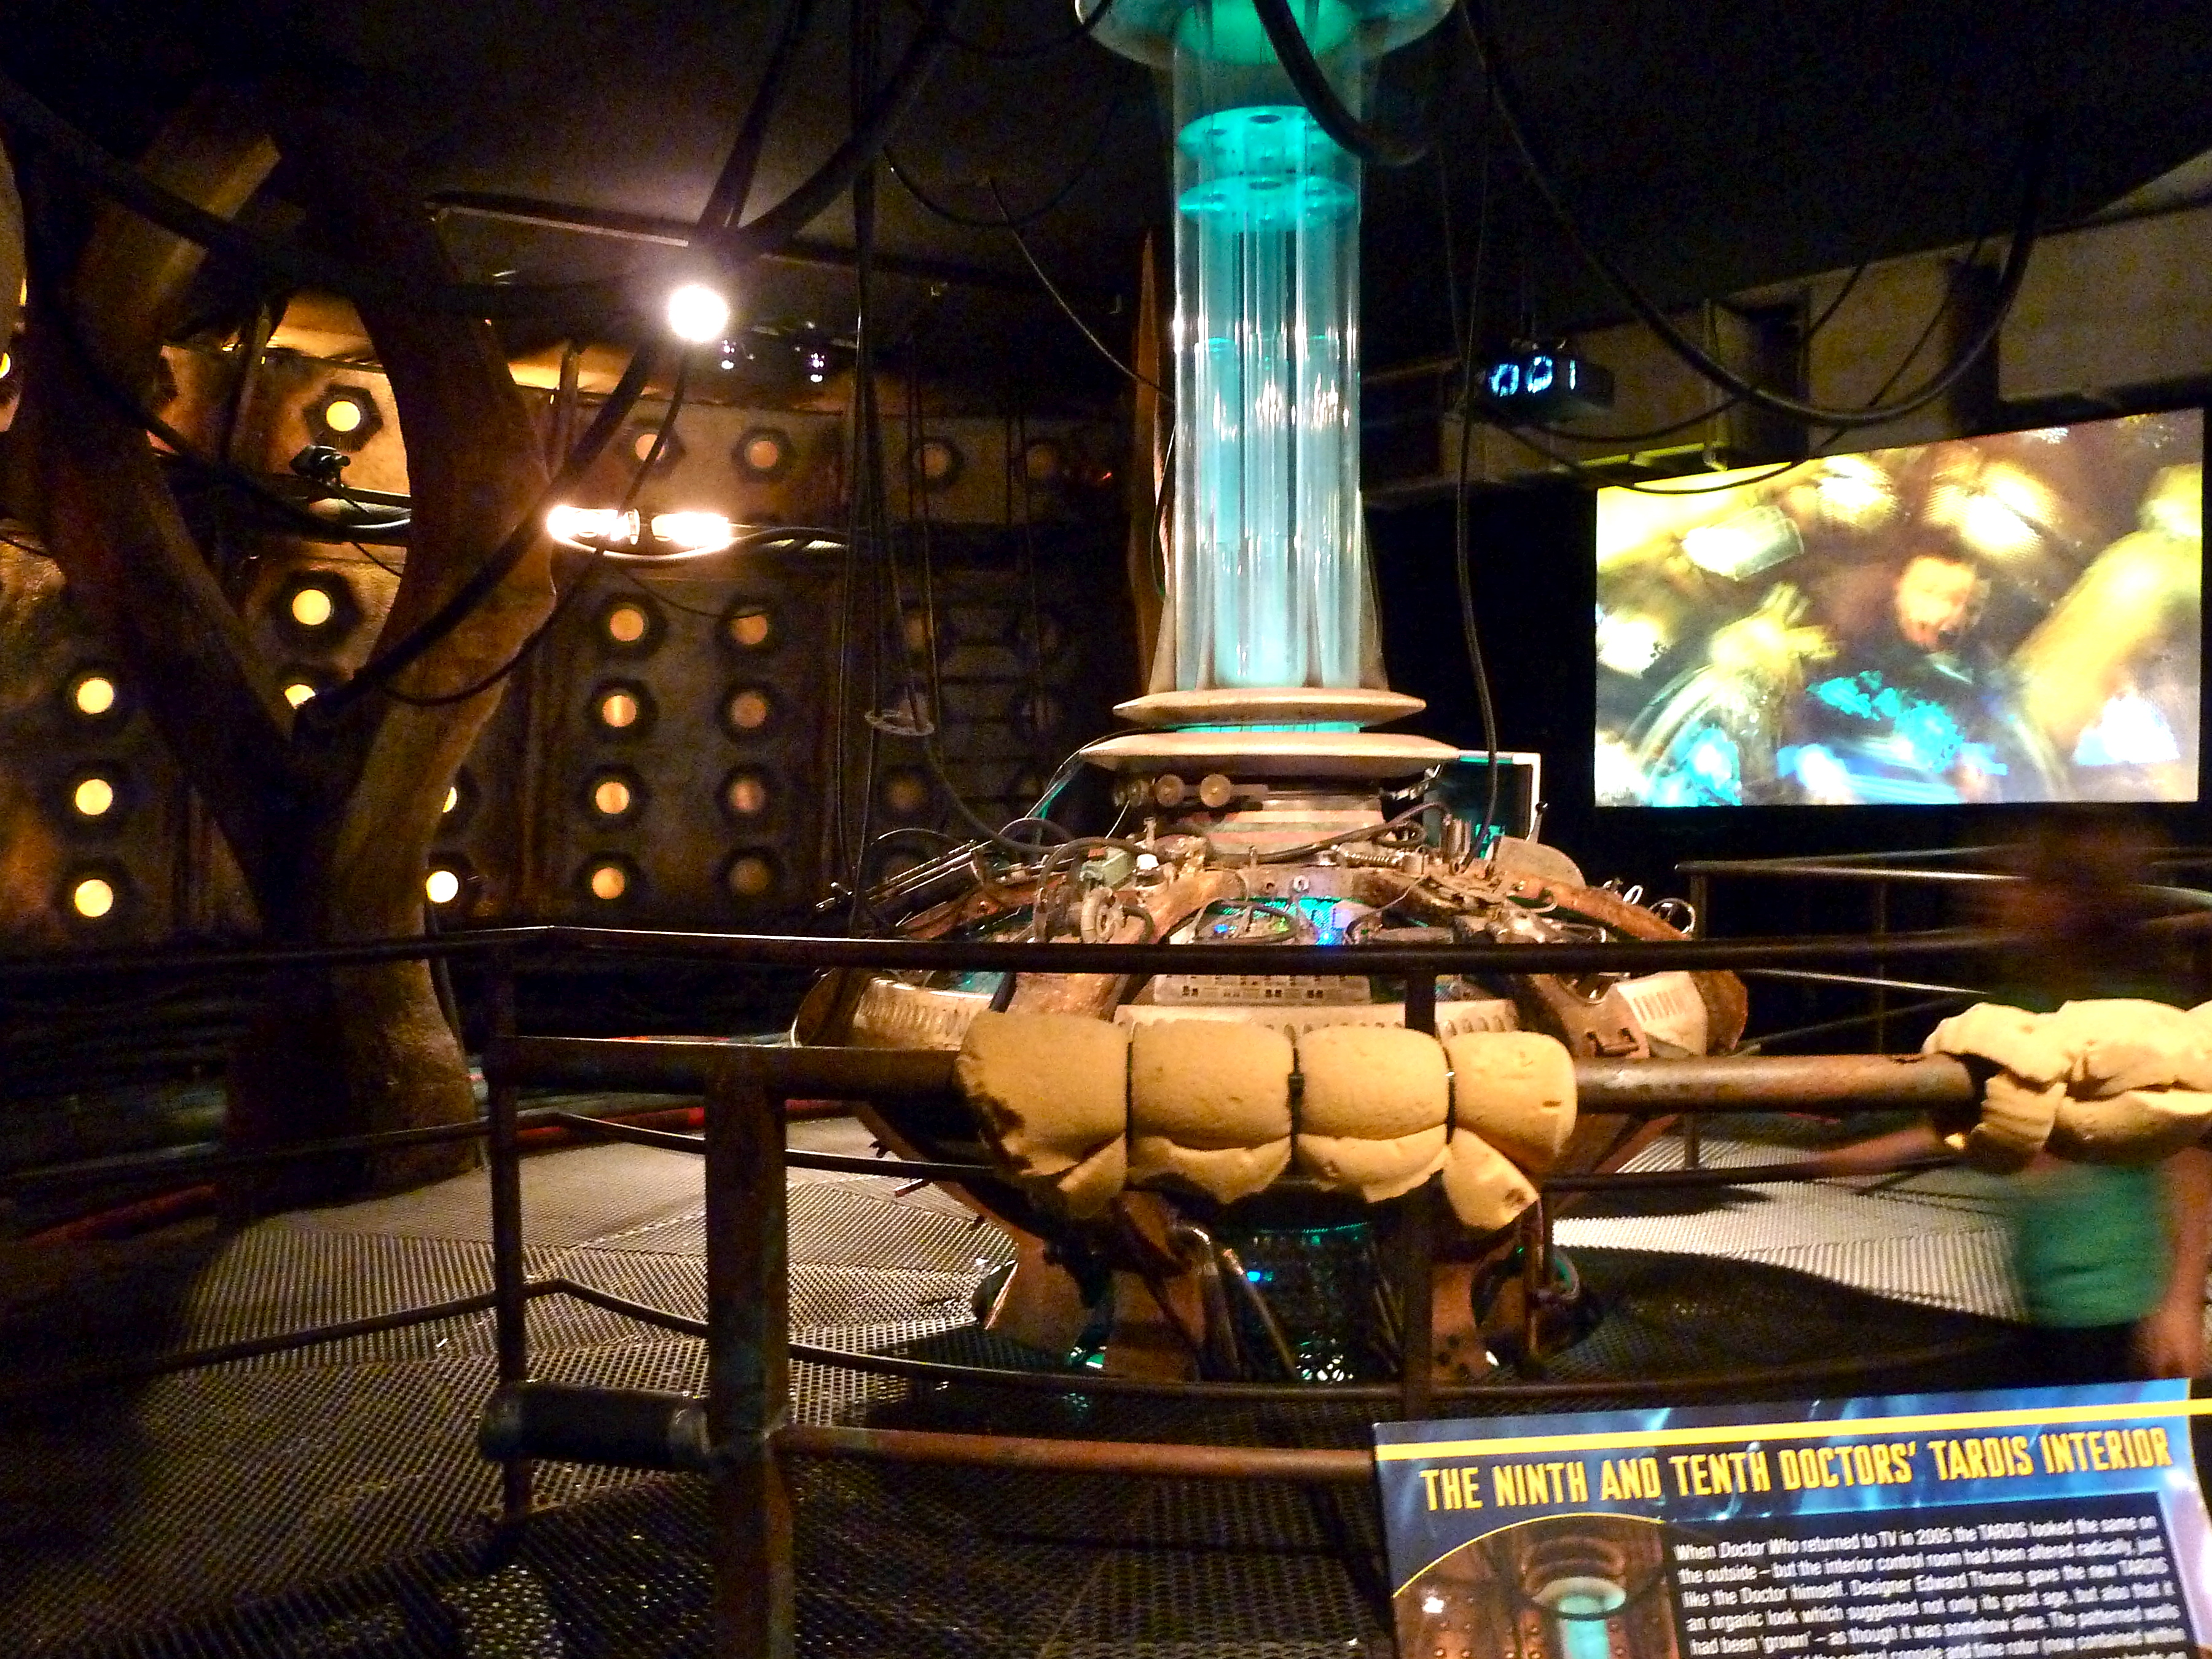 File:The Ninth And Tenth Doctorsu0027 Tardis Interior (6097829000)